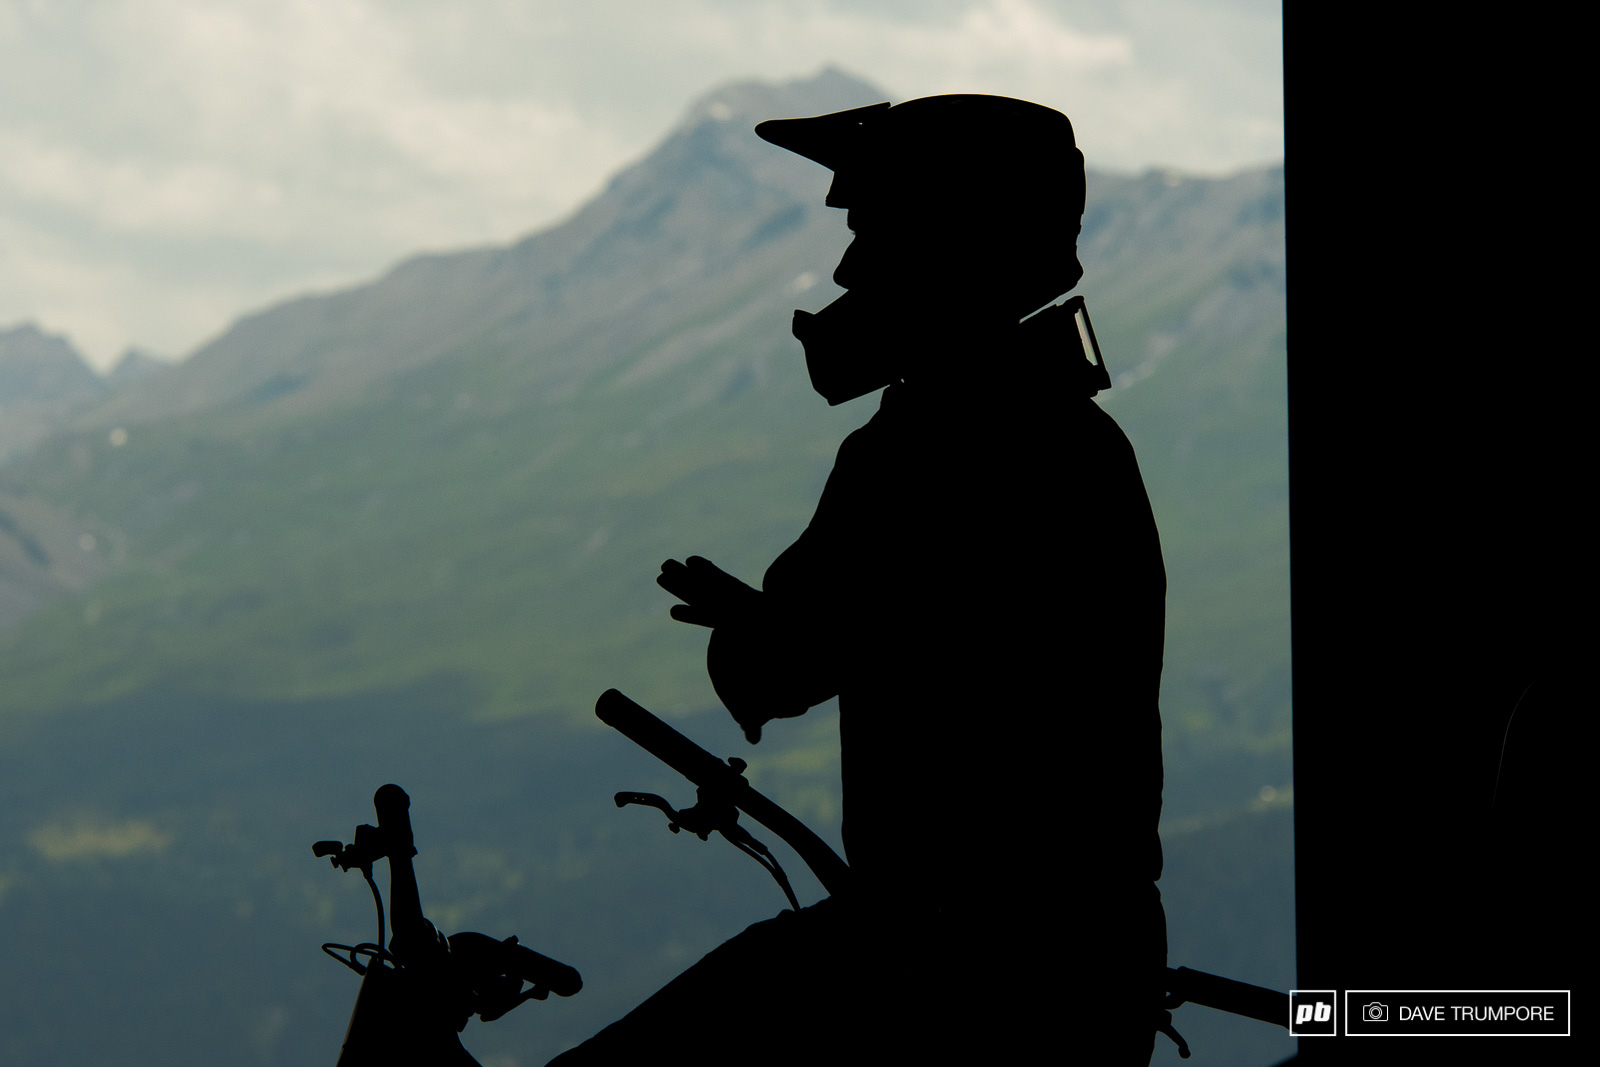 One last moment to collect your thoughts before blasting down the mountain in Lenzerheide.